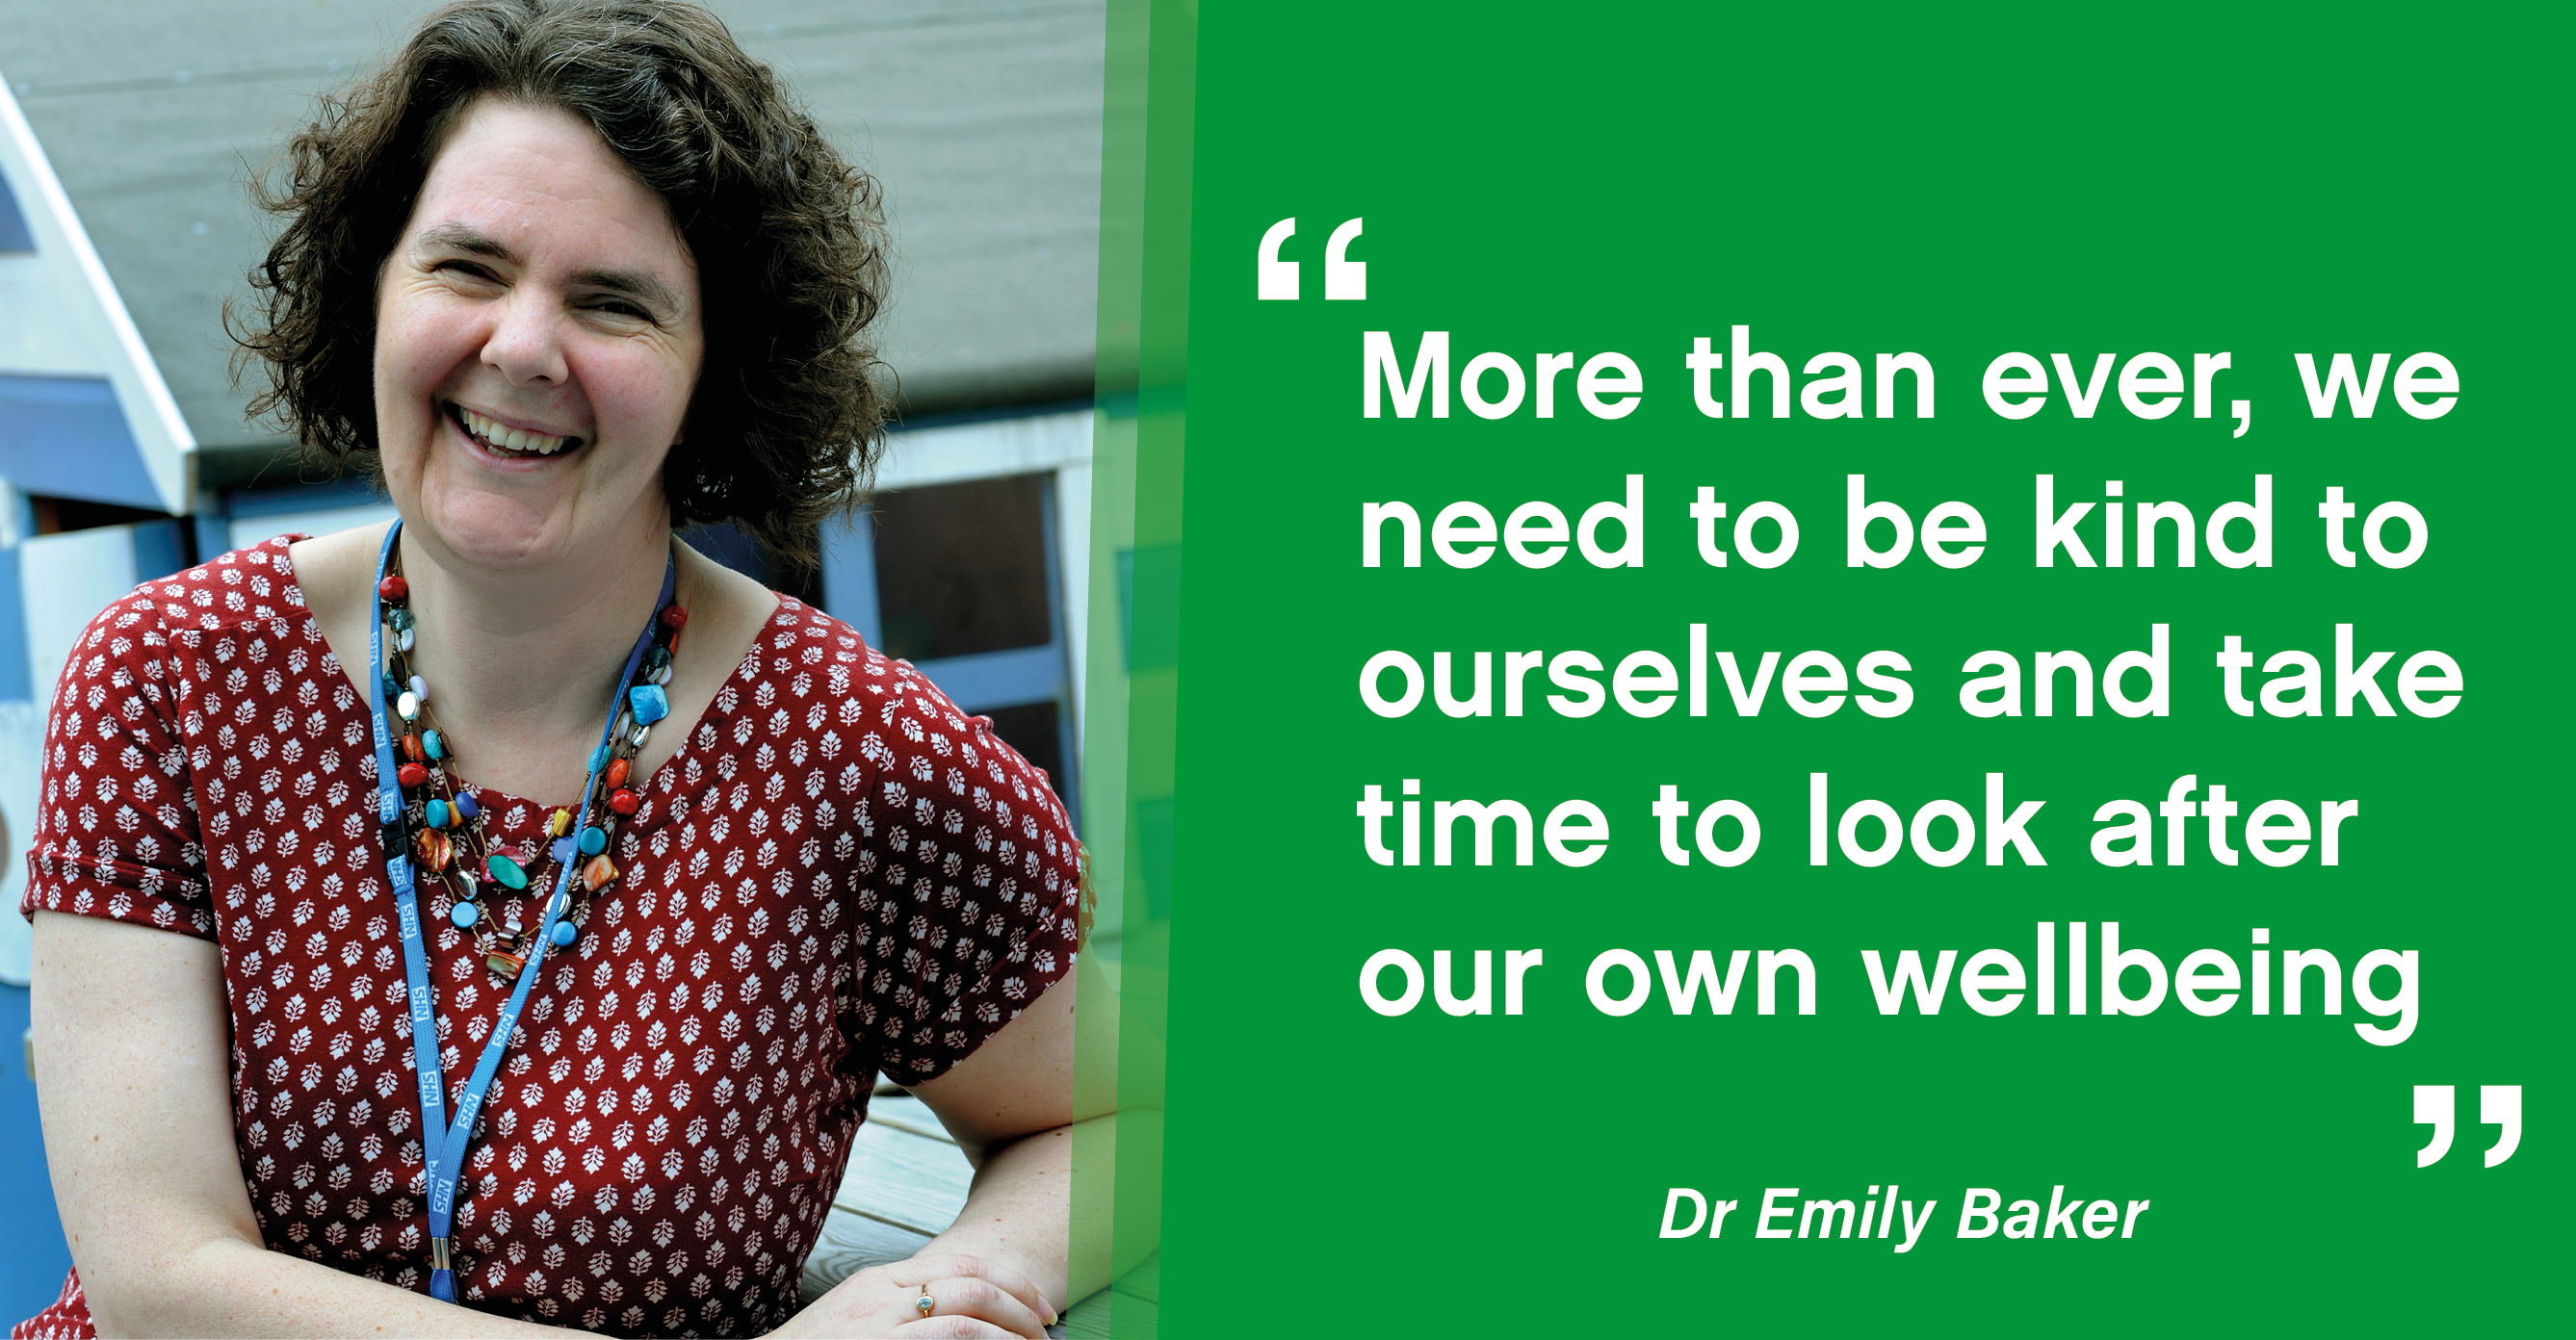 Dr Emily Baker, consultant clinical psychologist.